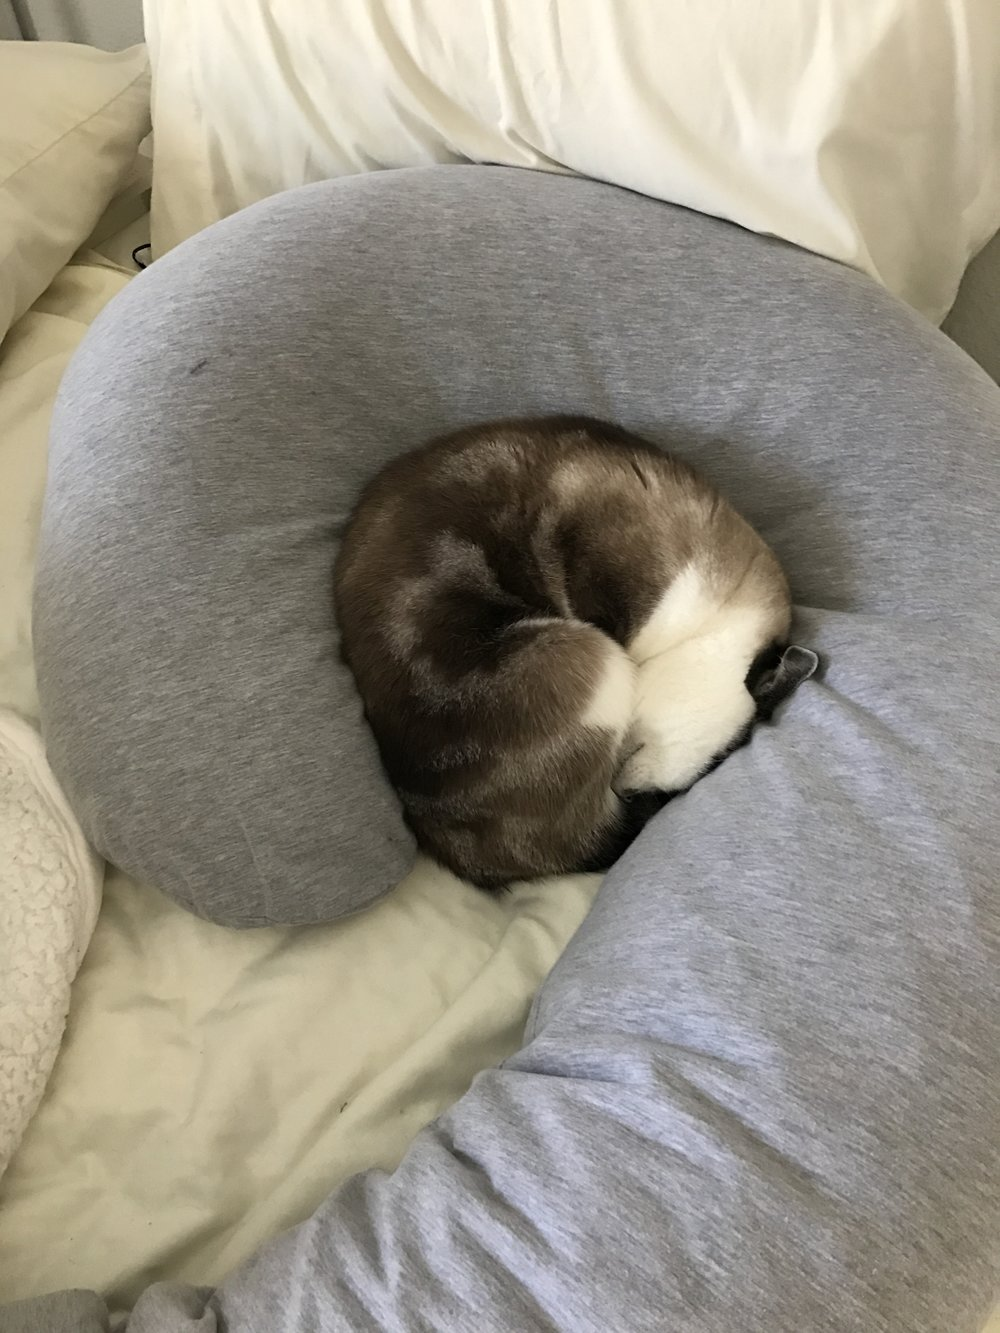 Even my pregnancy pillow isn't safe!